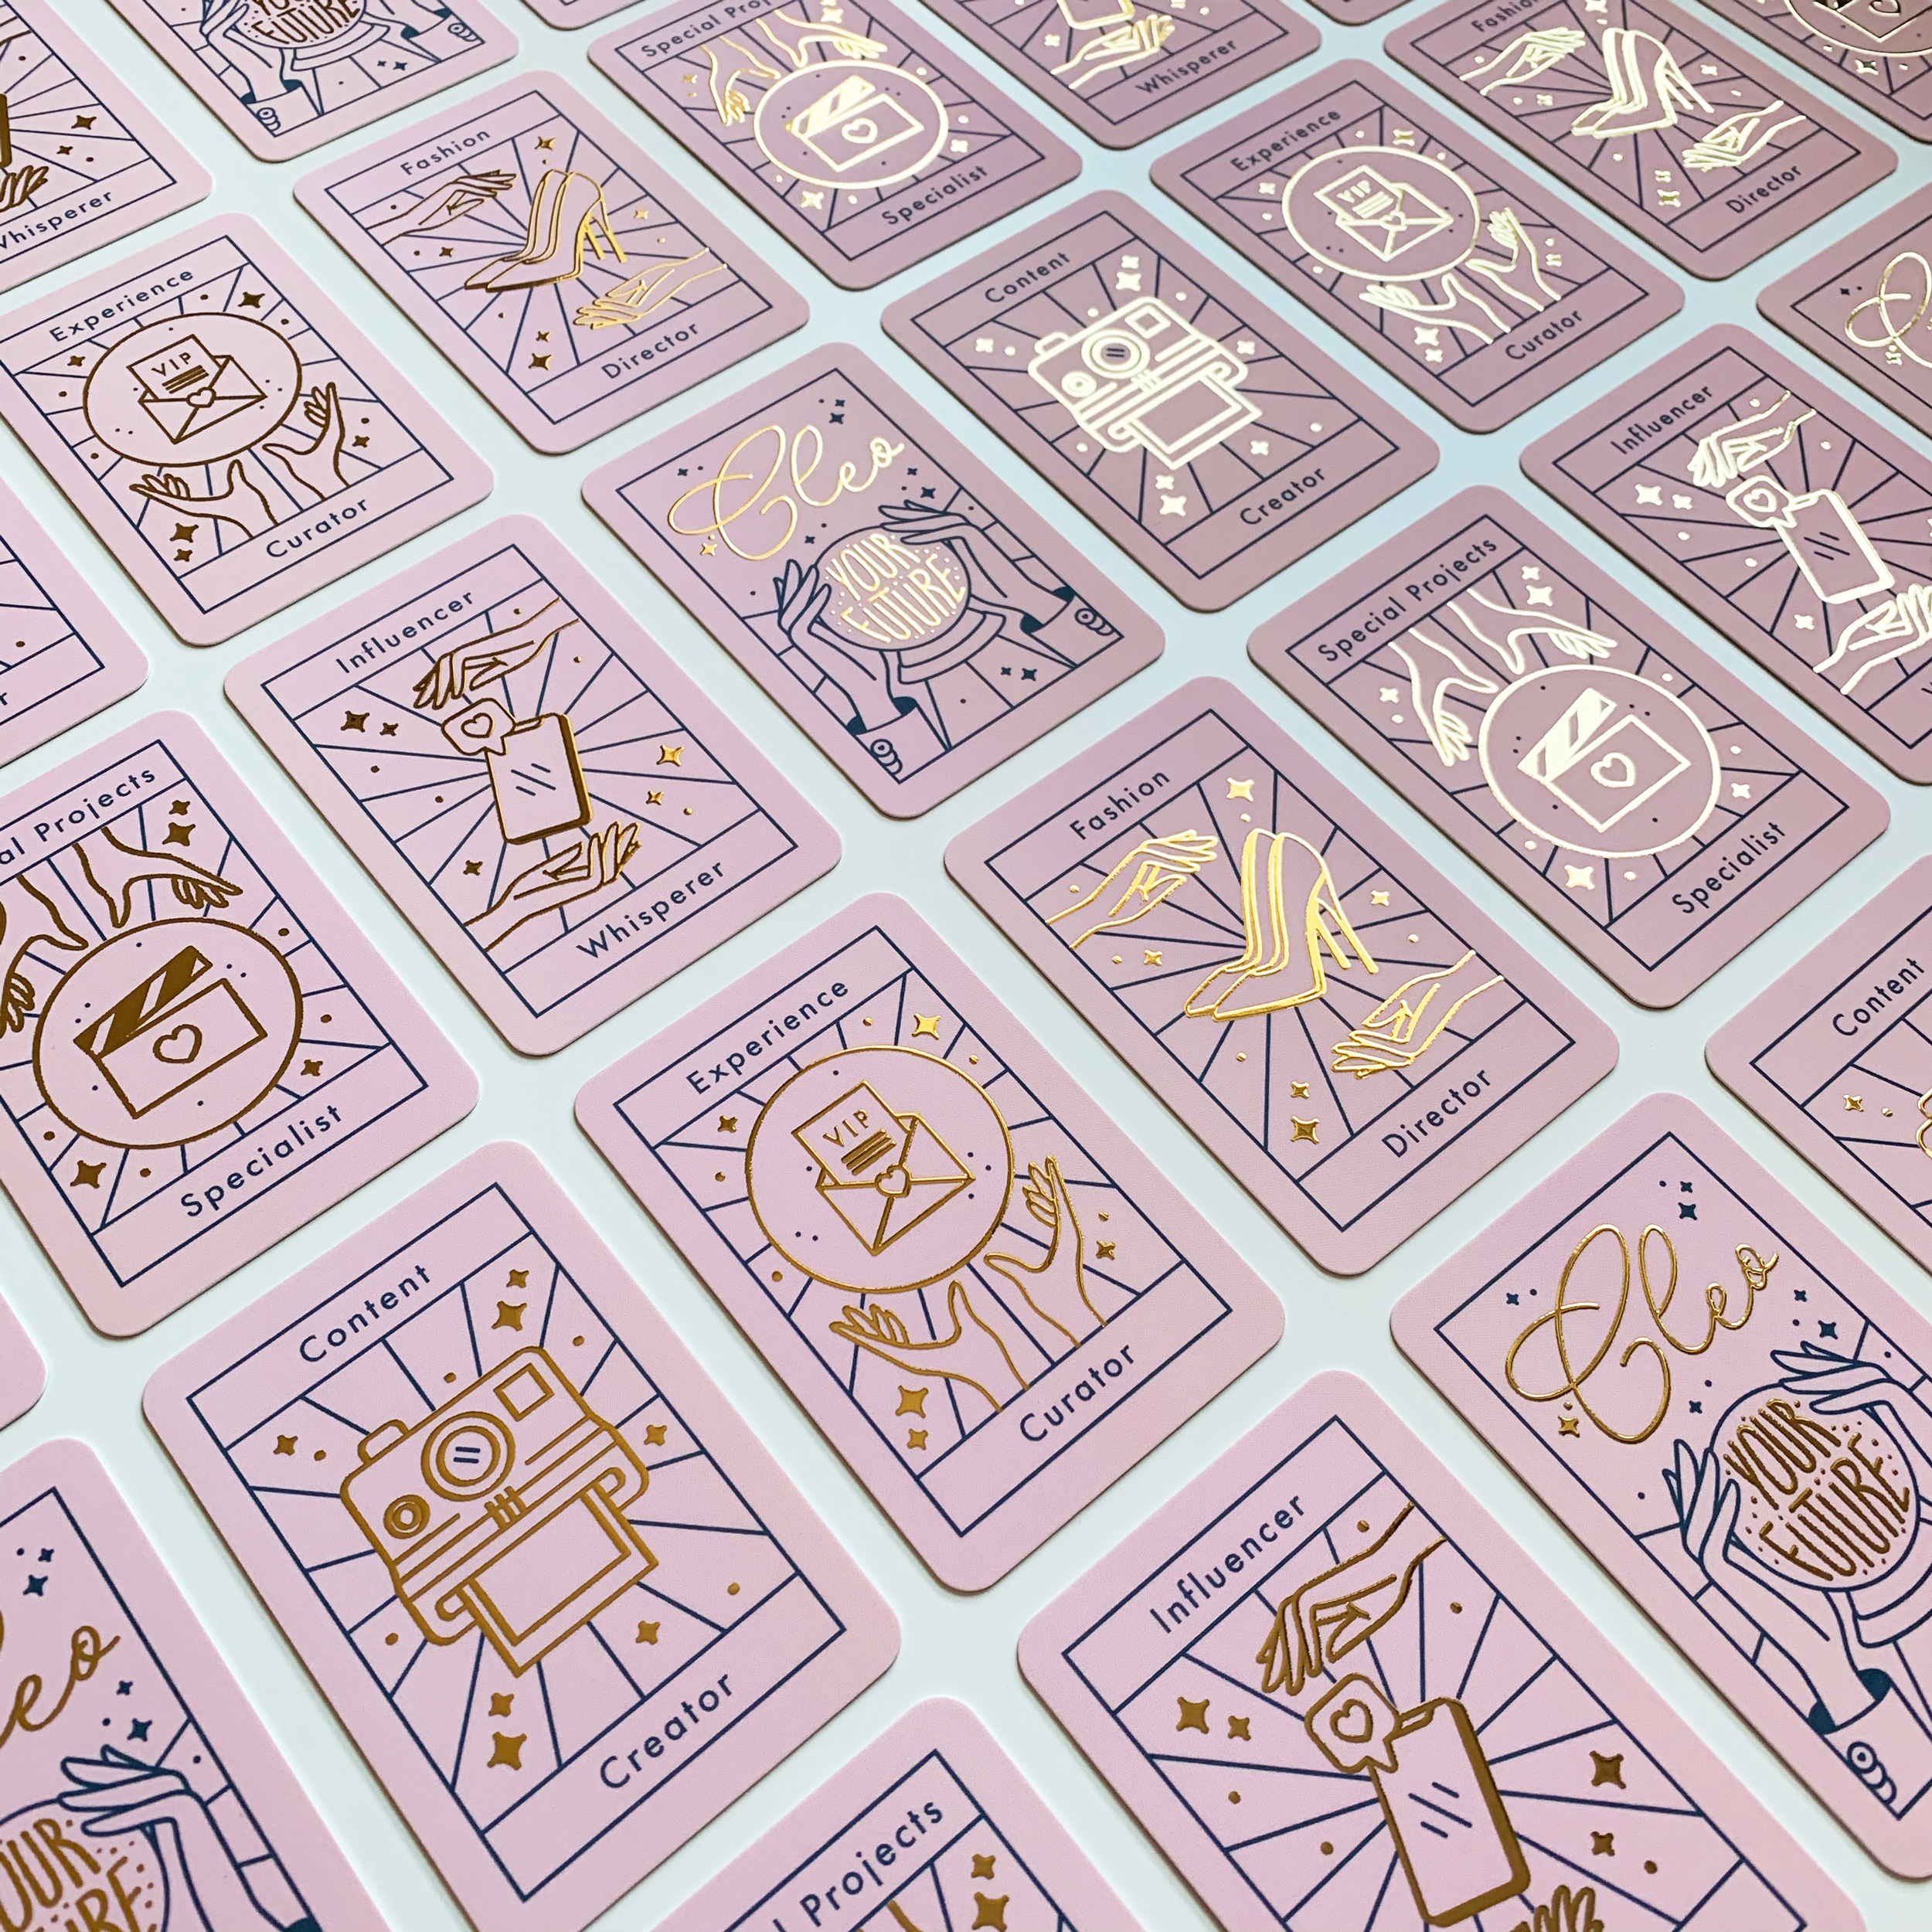 Cleo tarot deck-styled business cards